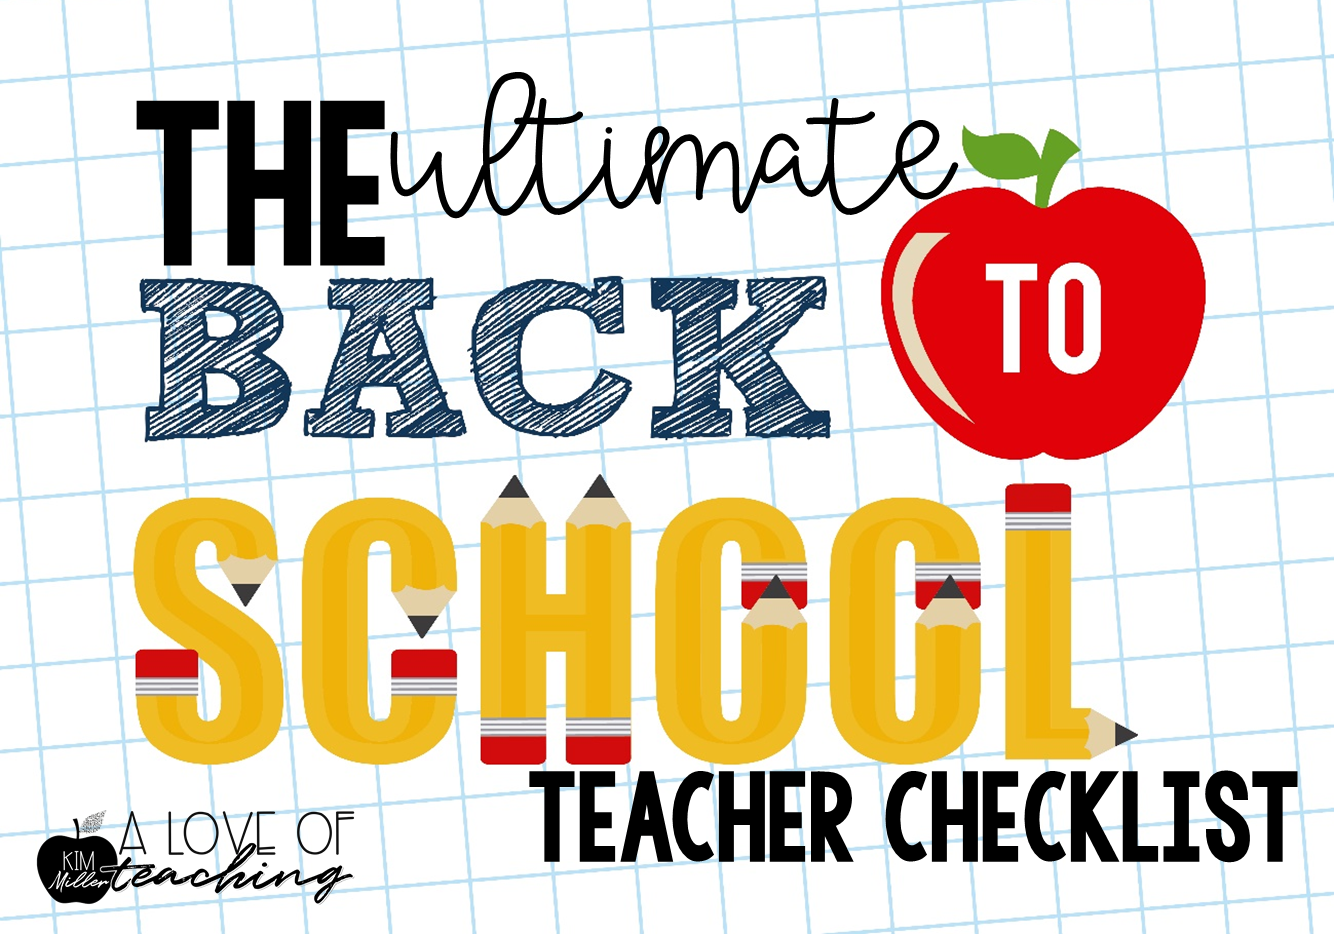 The Ultimate Back-to-School Teacher Checklist